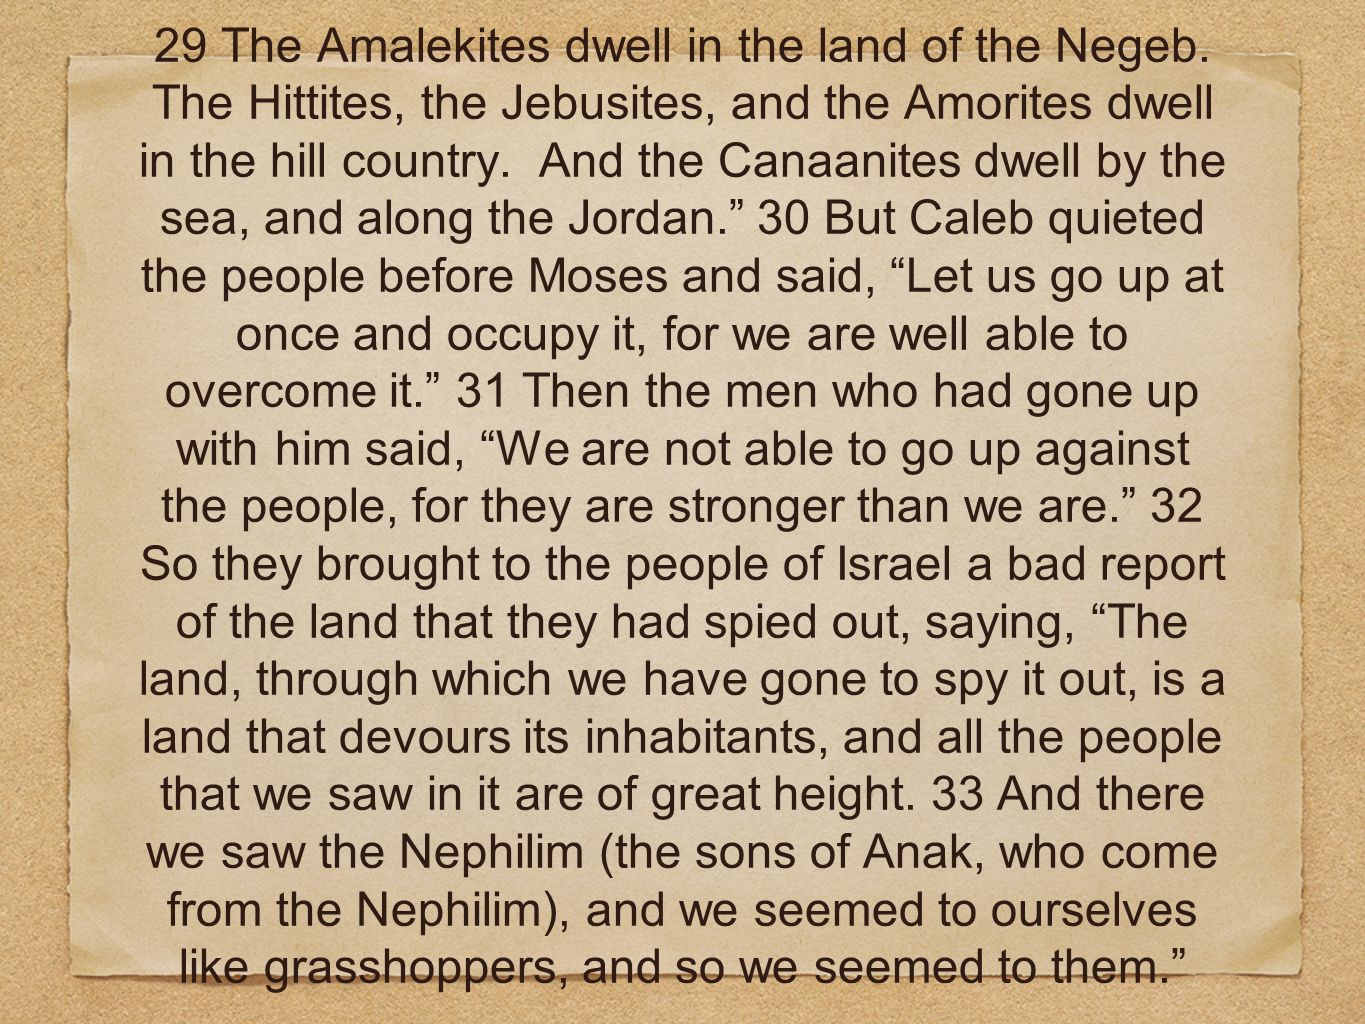 29 The Amalekites dwell in the land of the Negeb. The Hittites, the Jebusites, and the Amorites dwell in the hill country. And the Canaanites dwell by